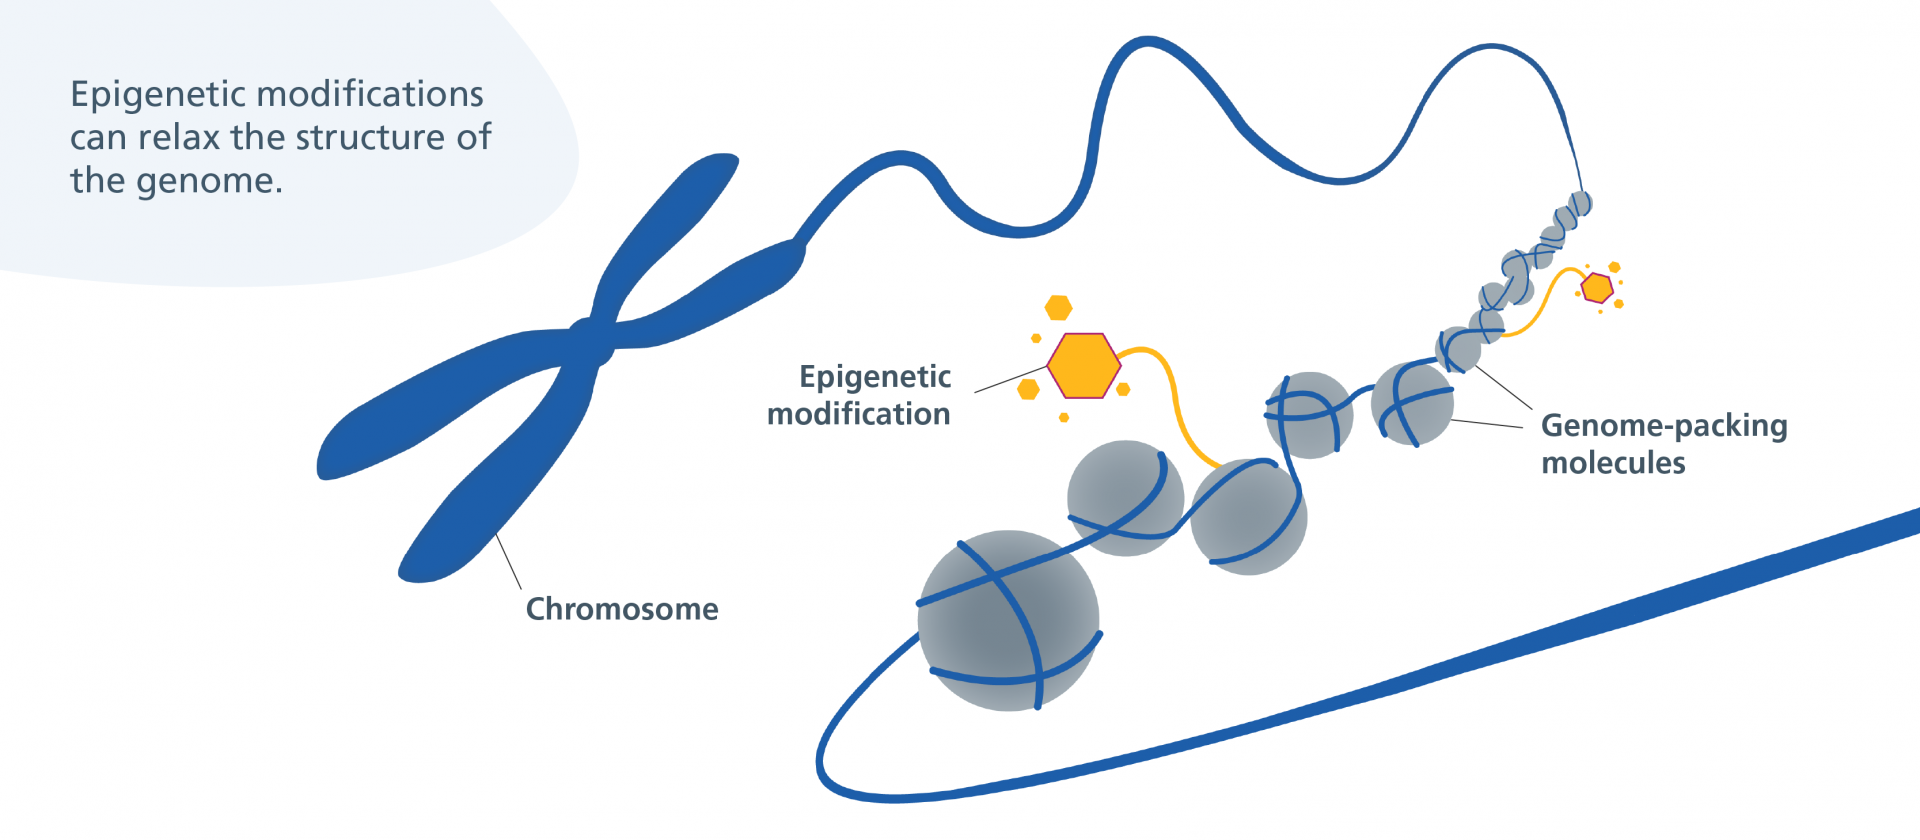 Epigenetic modifications relaxing the structure of the genome by